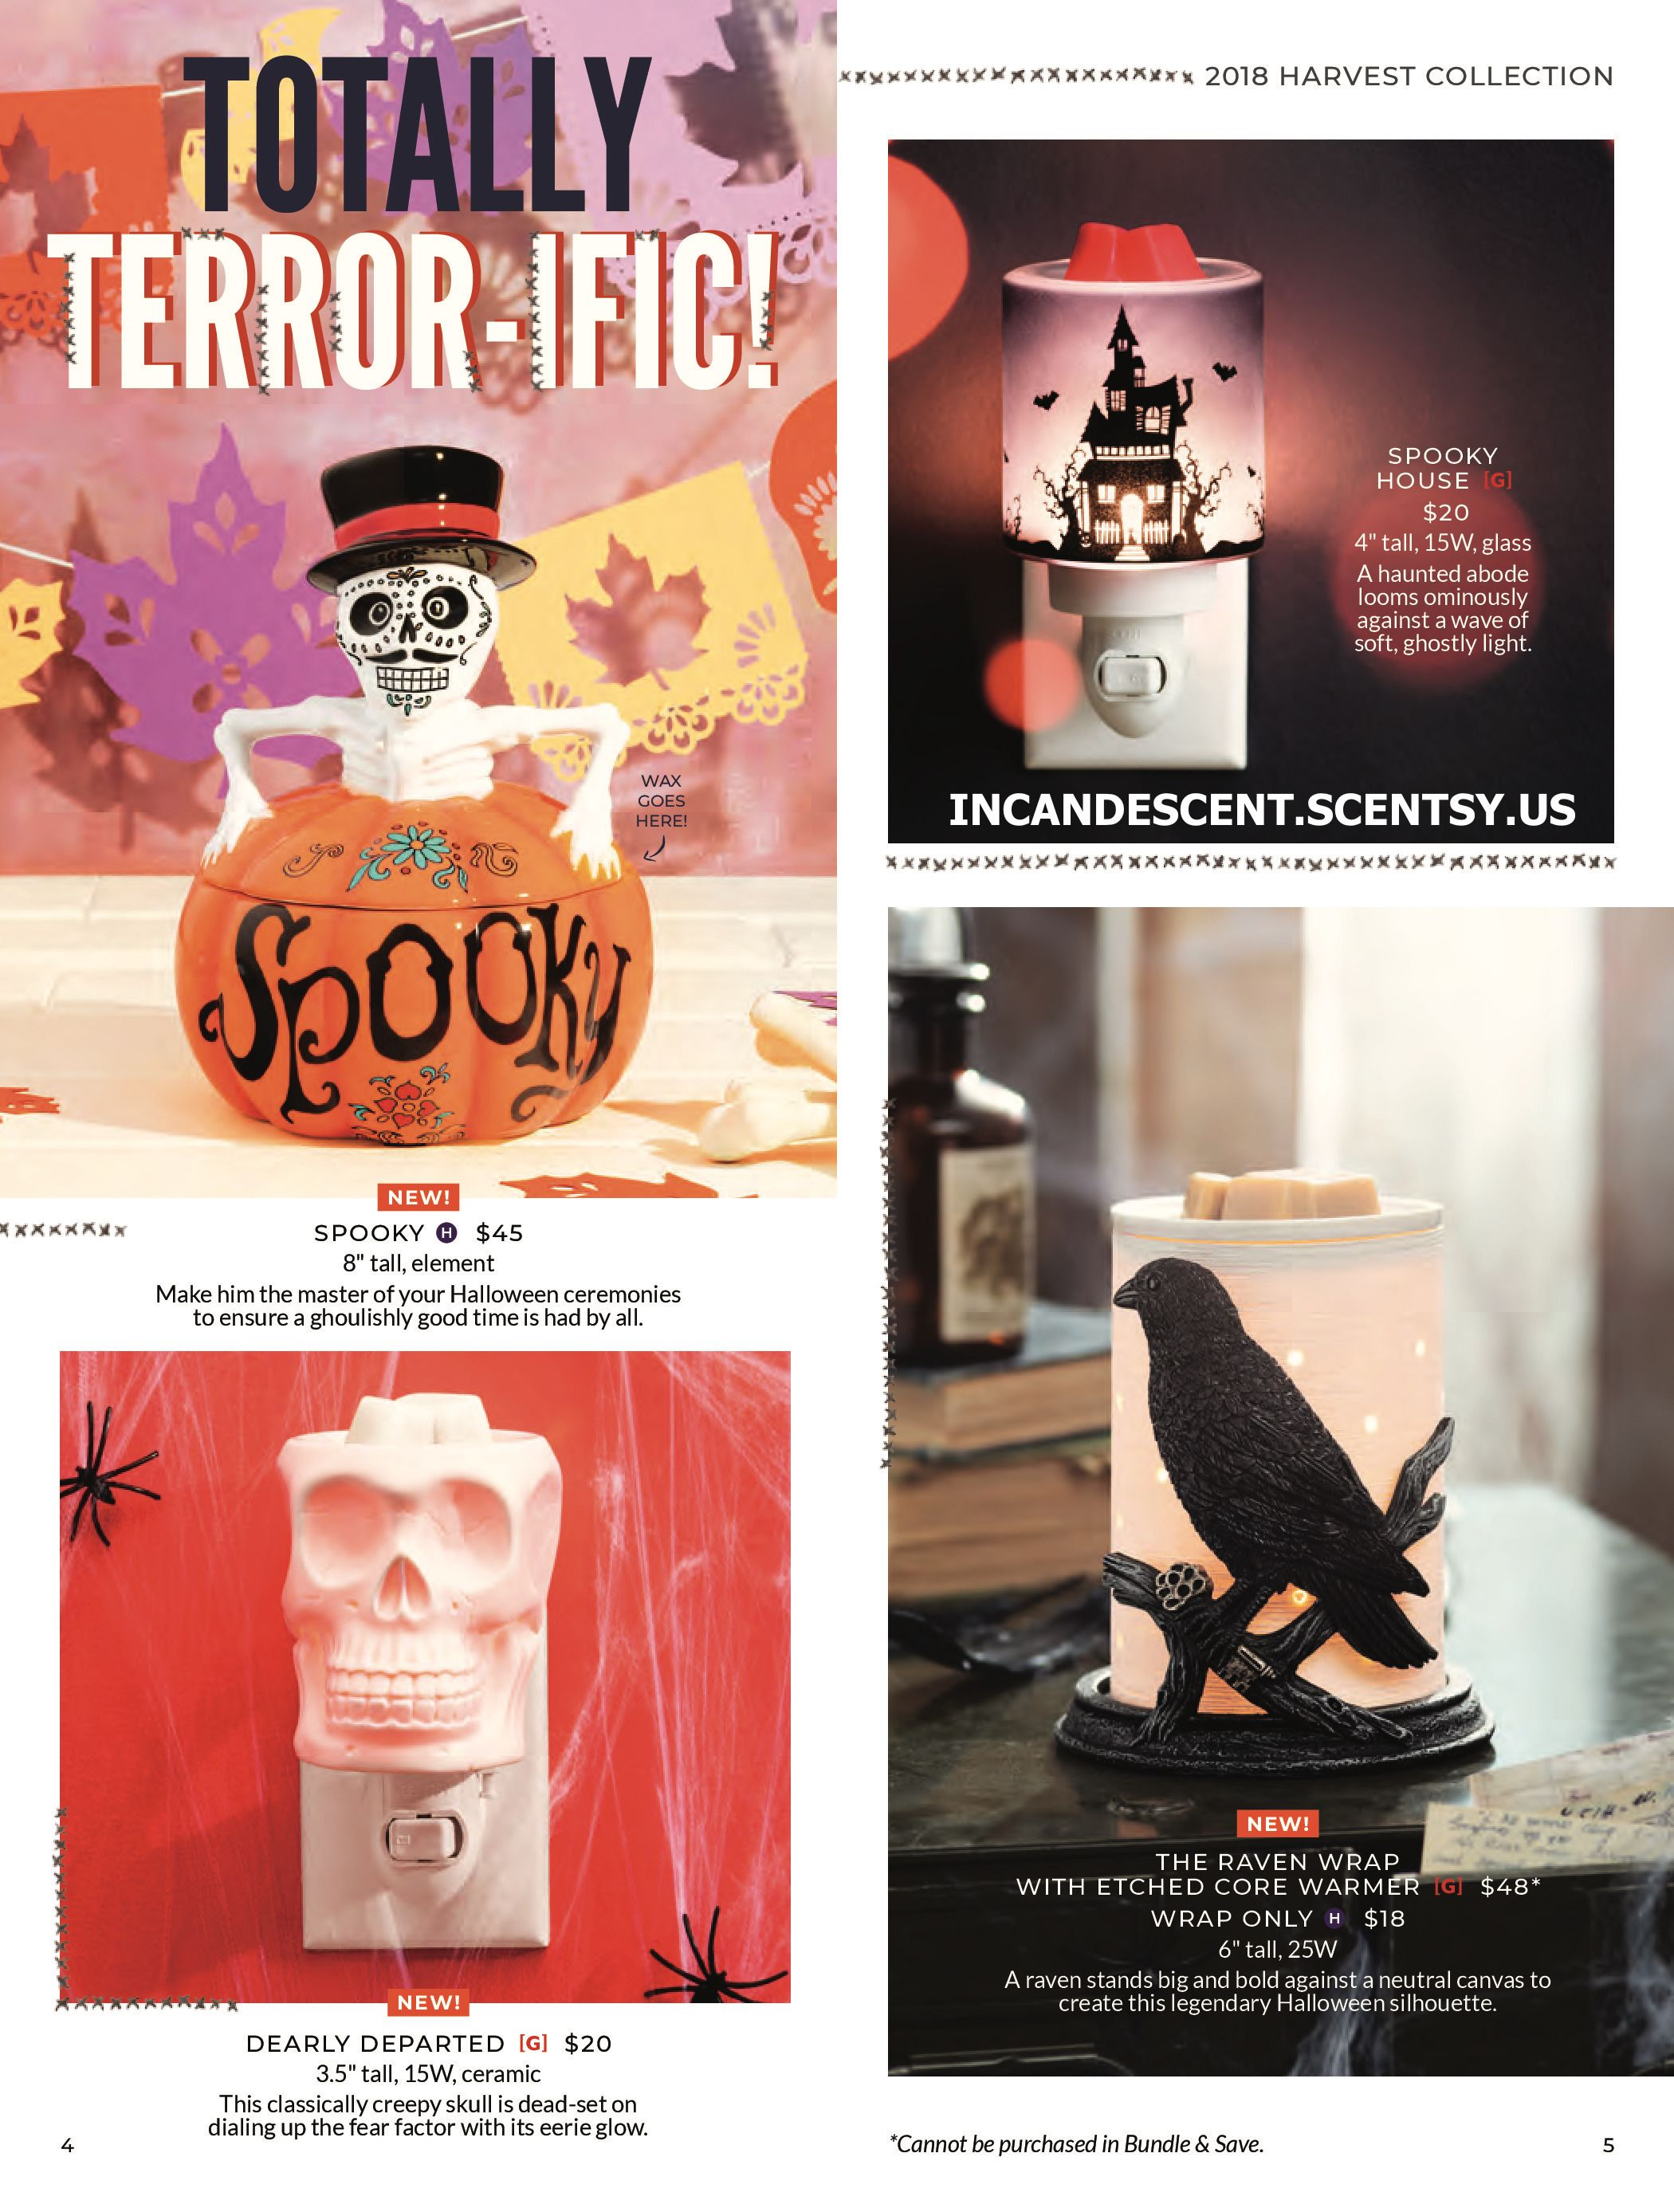 scentsy halloween harvest 2018 collection | scentsy 2018 harvest